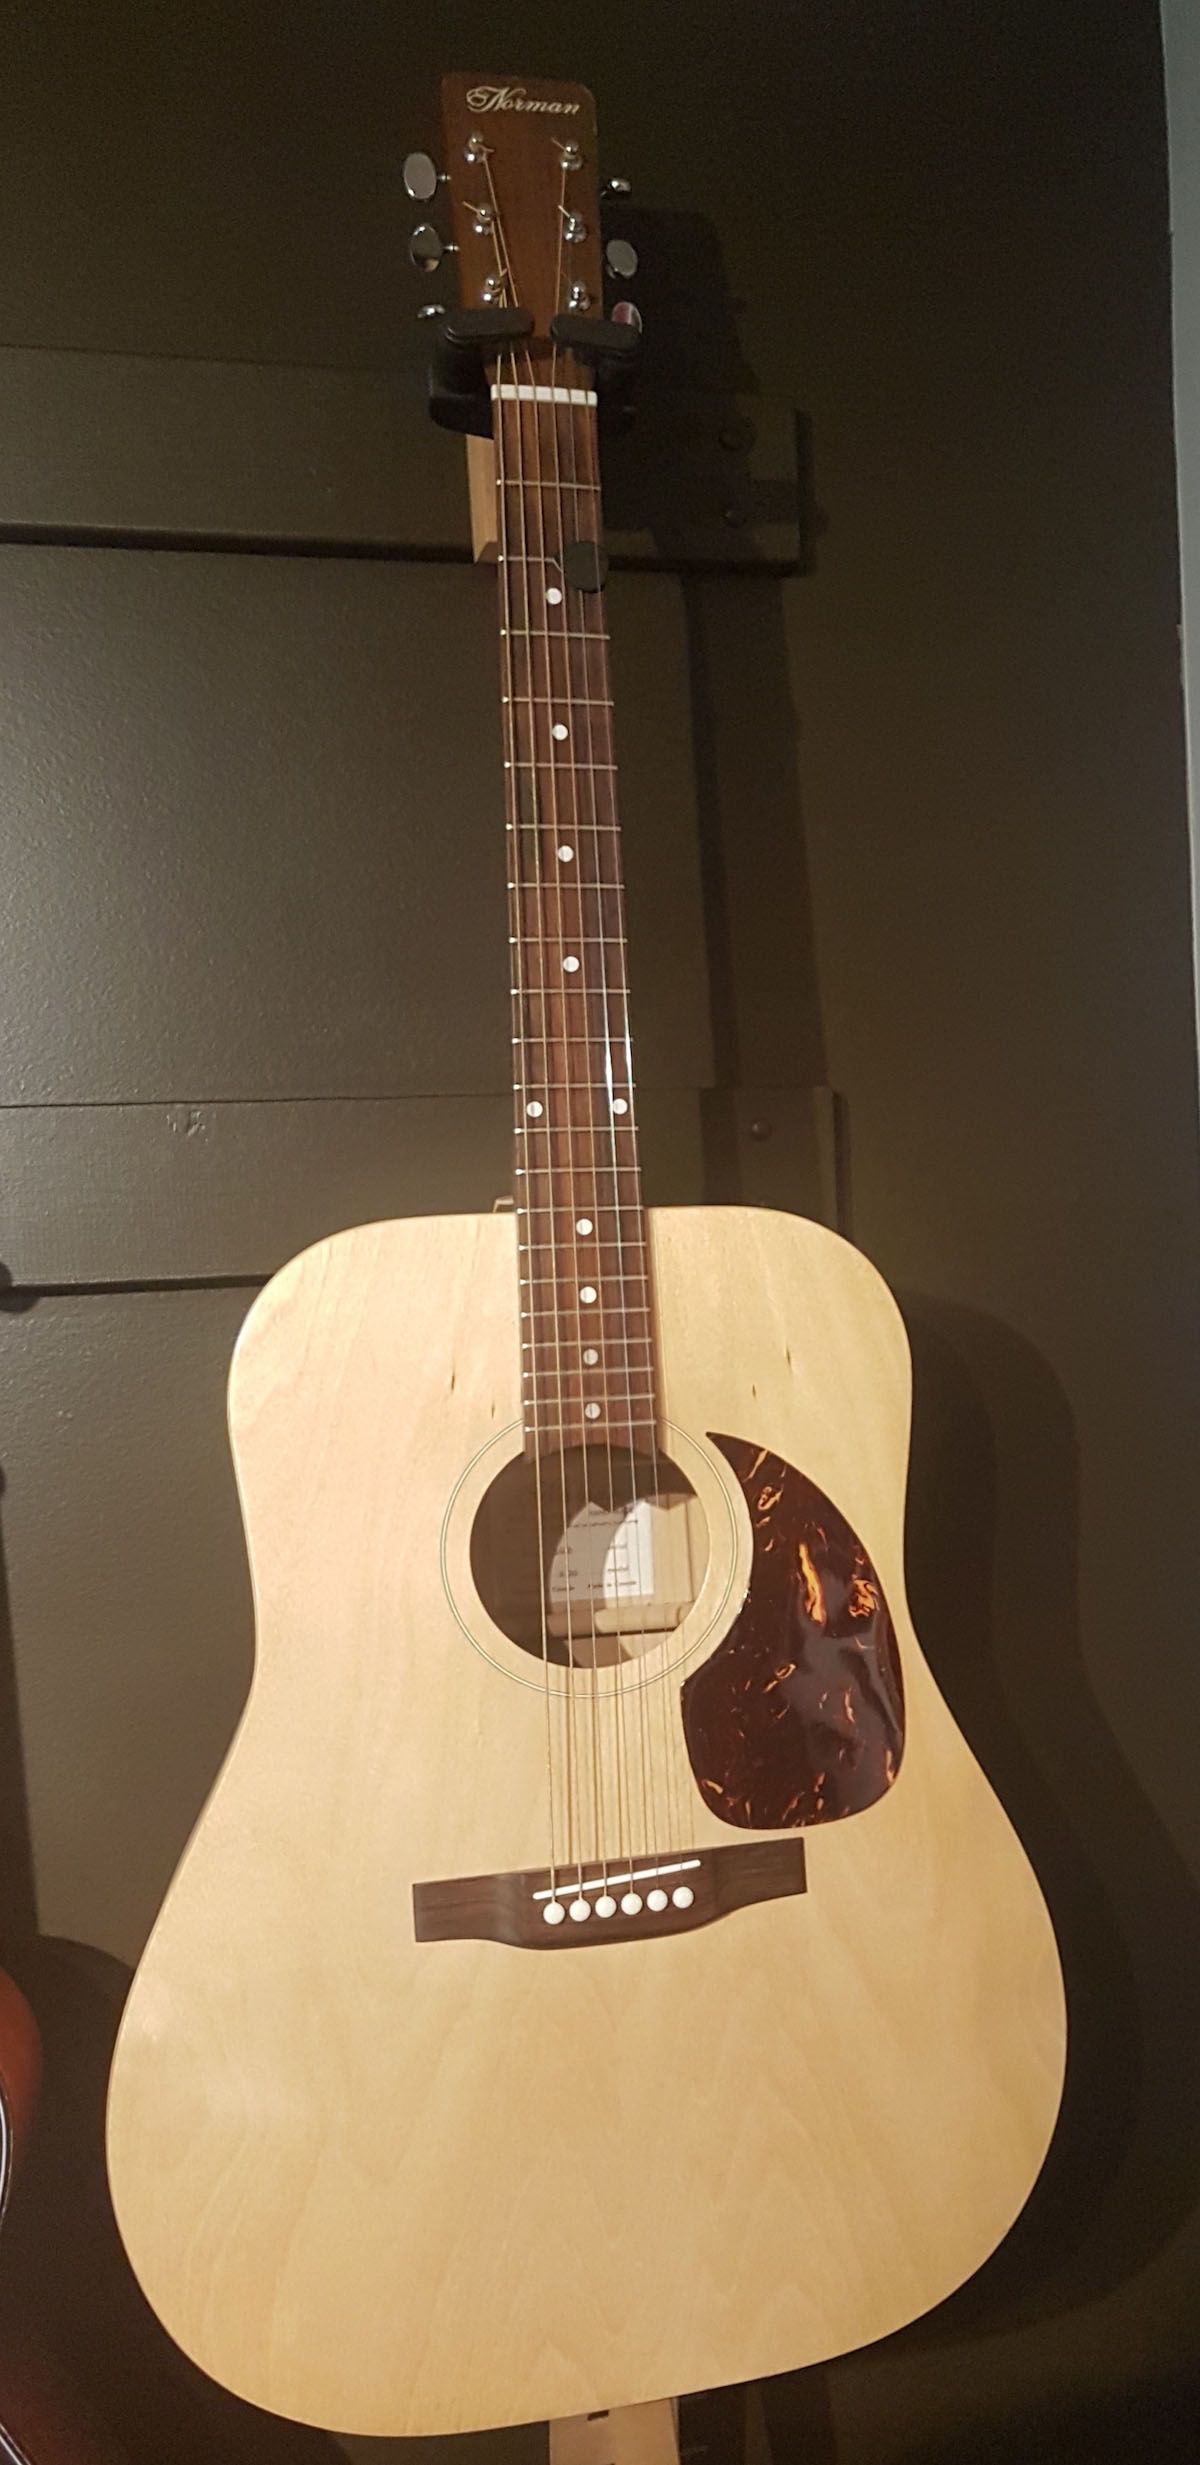 Norman guitars founded 1972 and taken over by Godin 1988